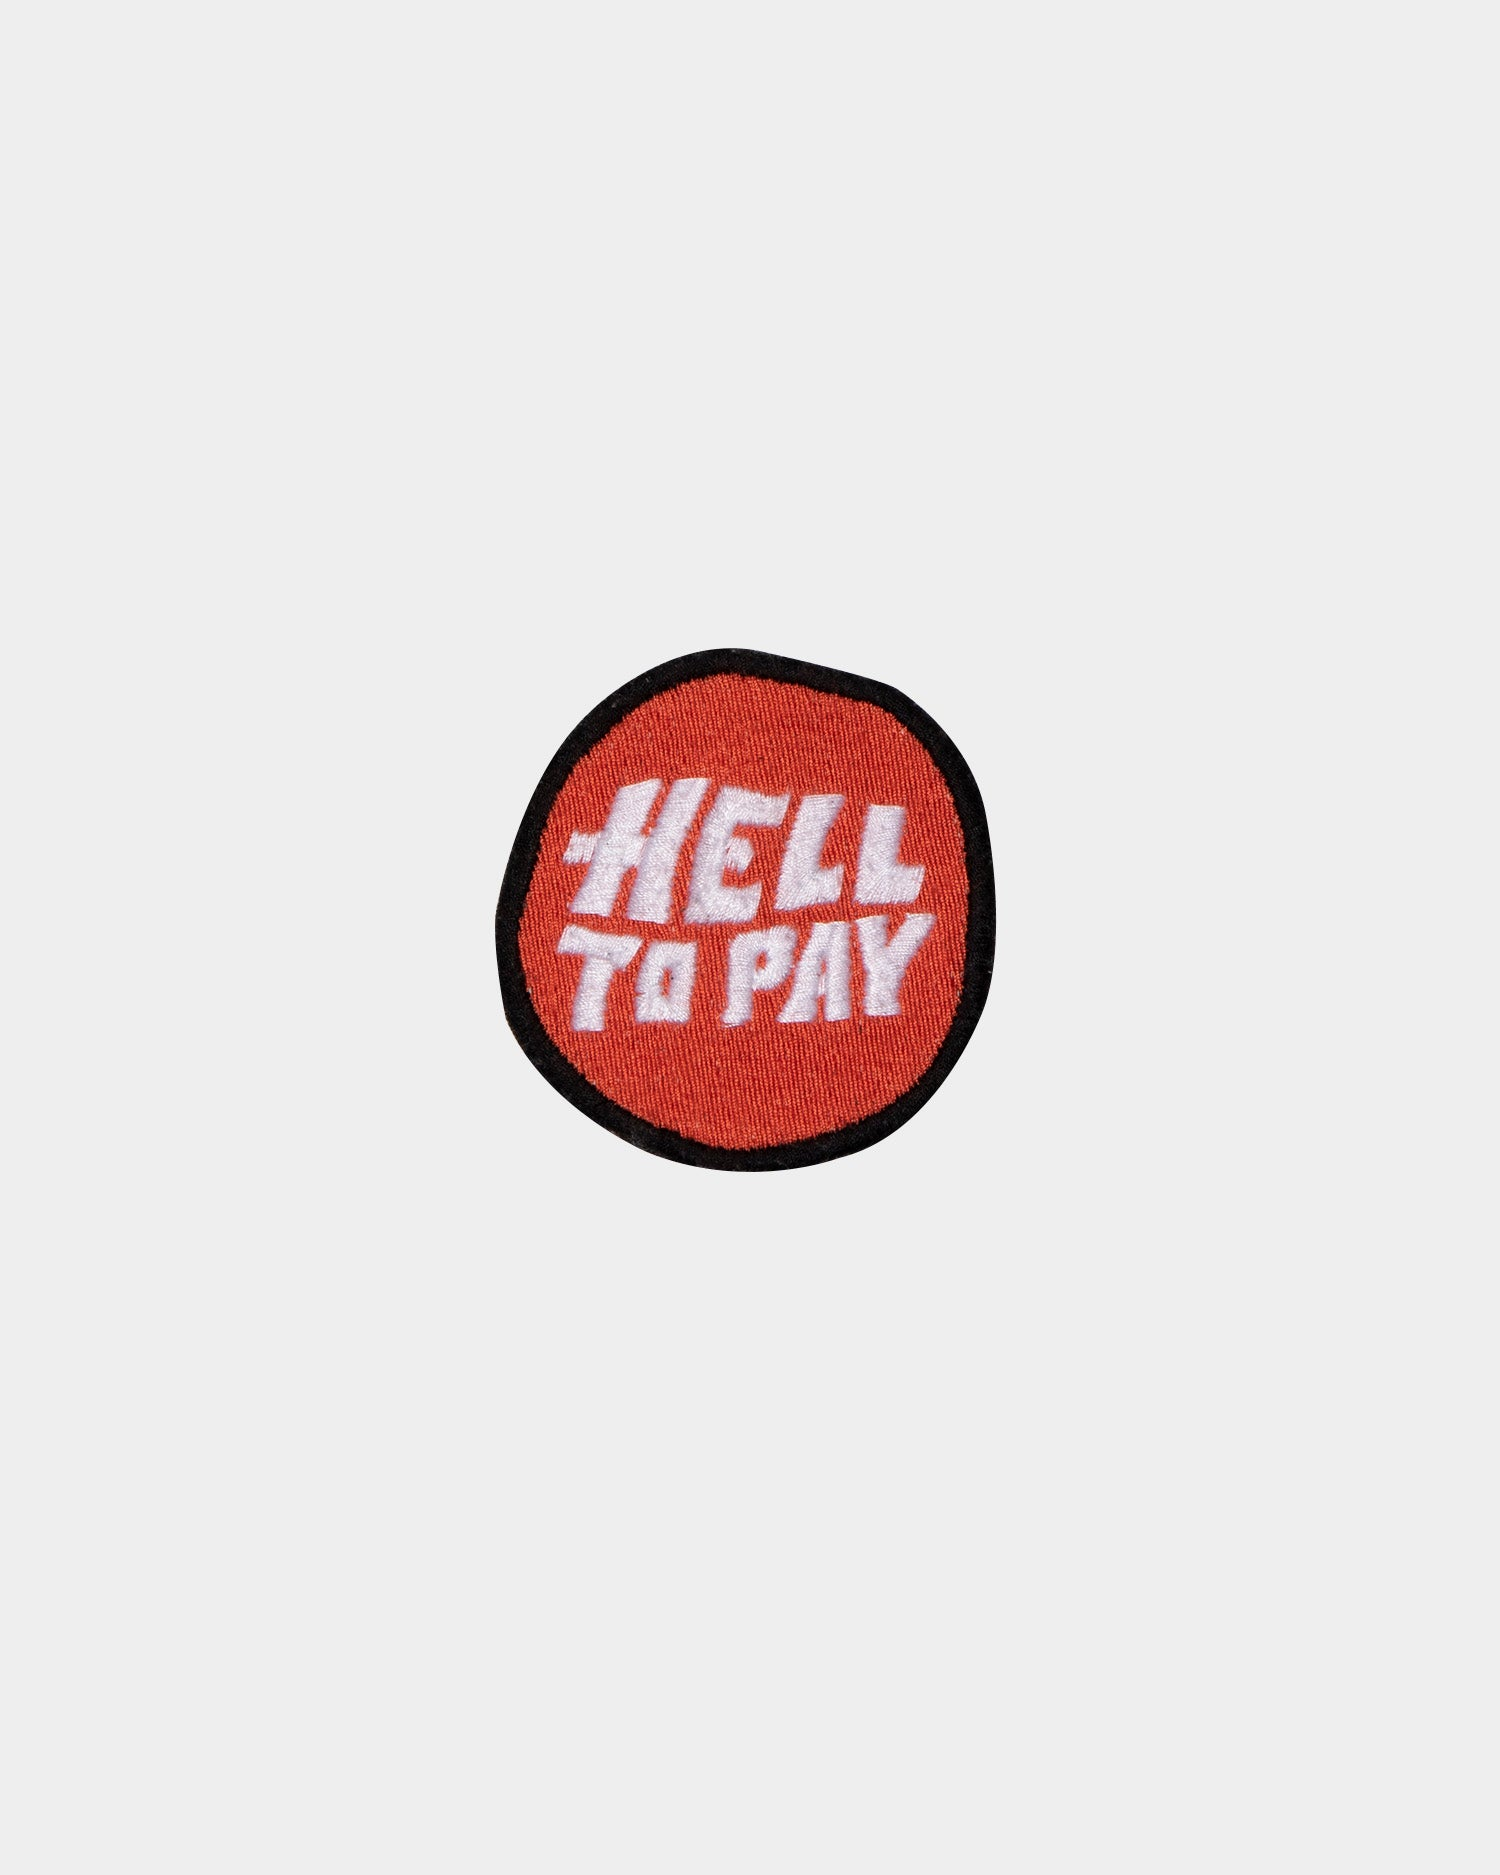 Hell to pay red patch